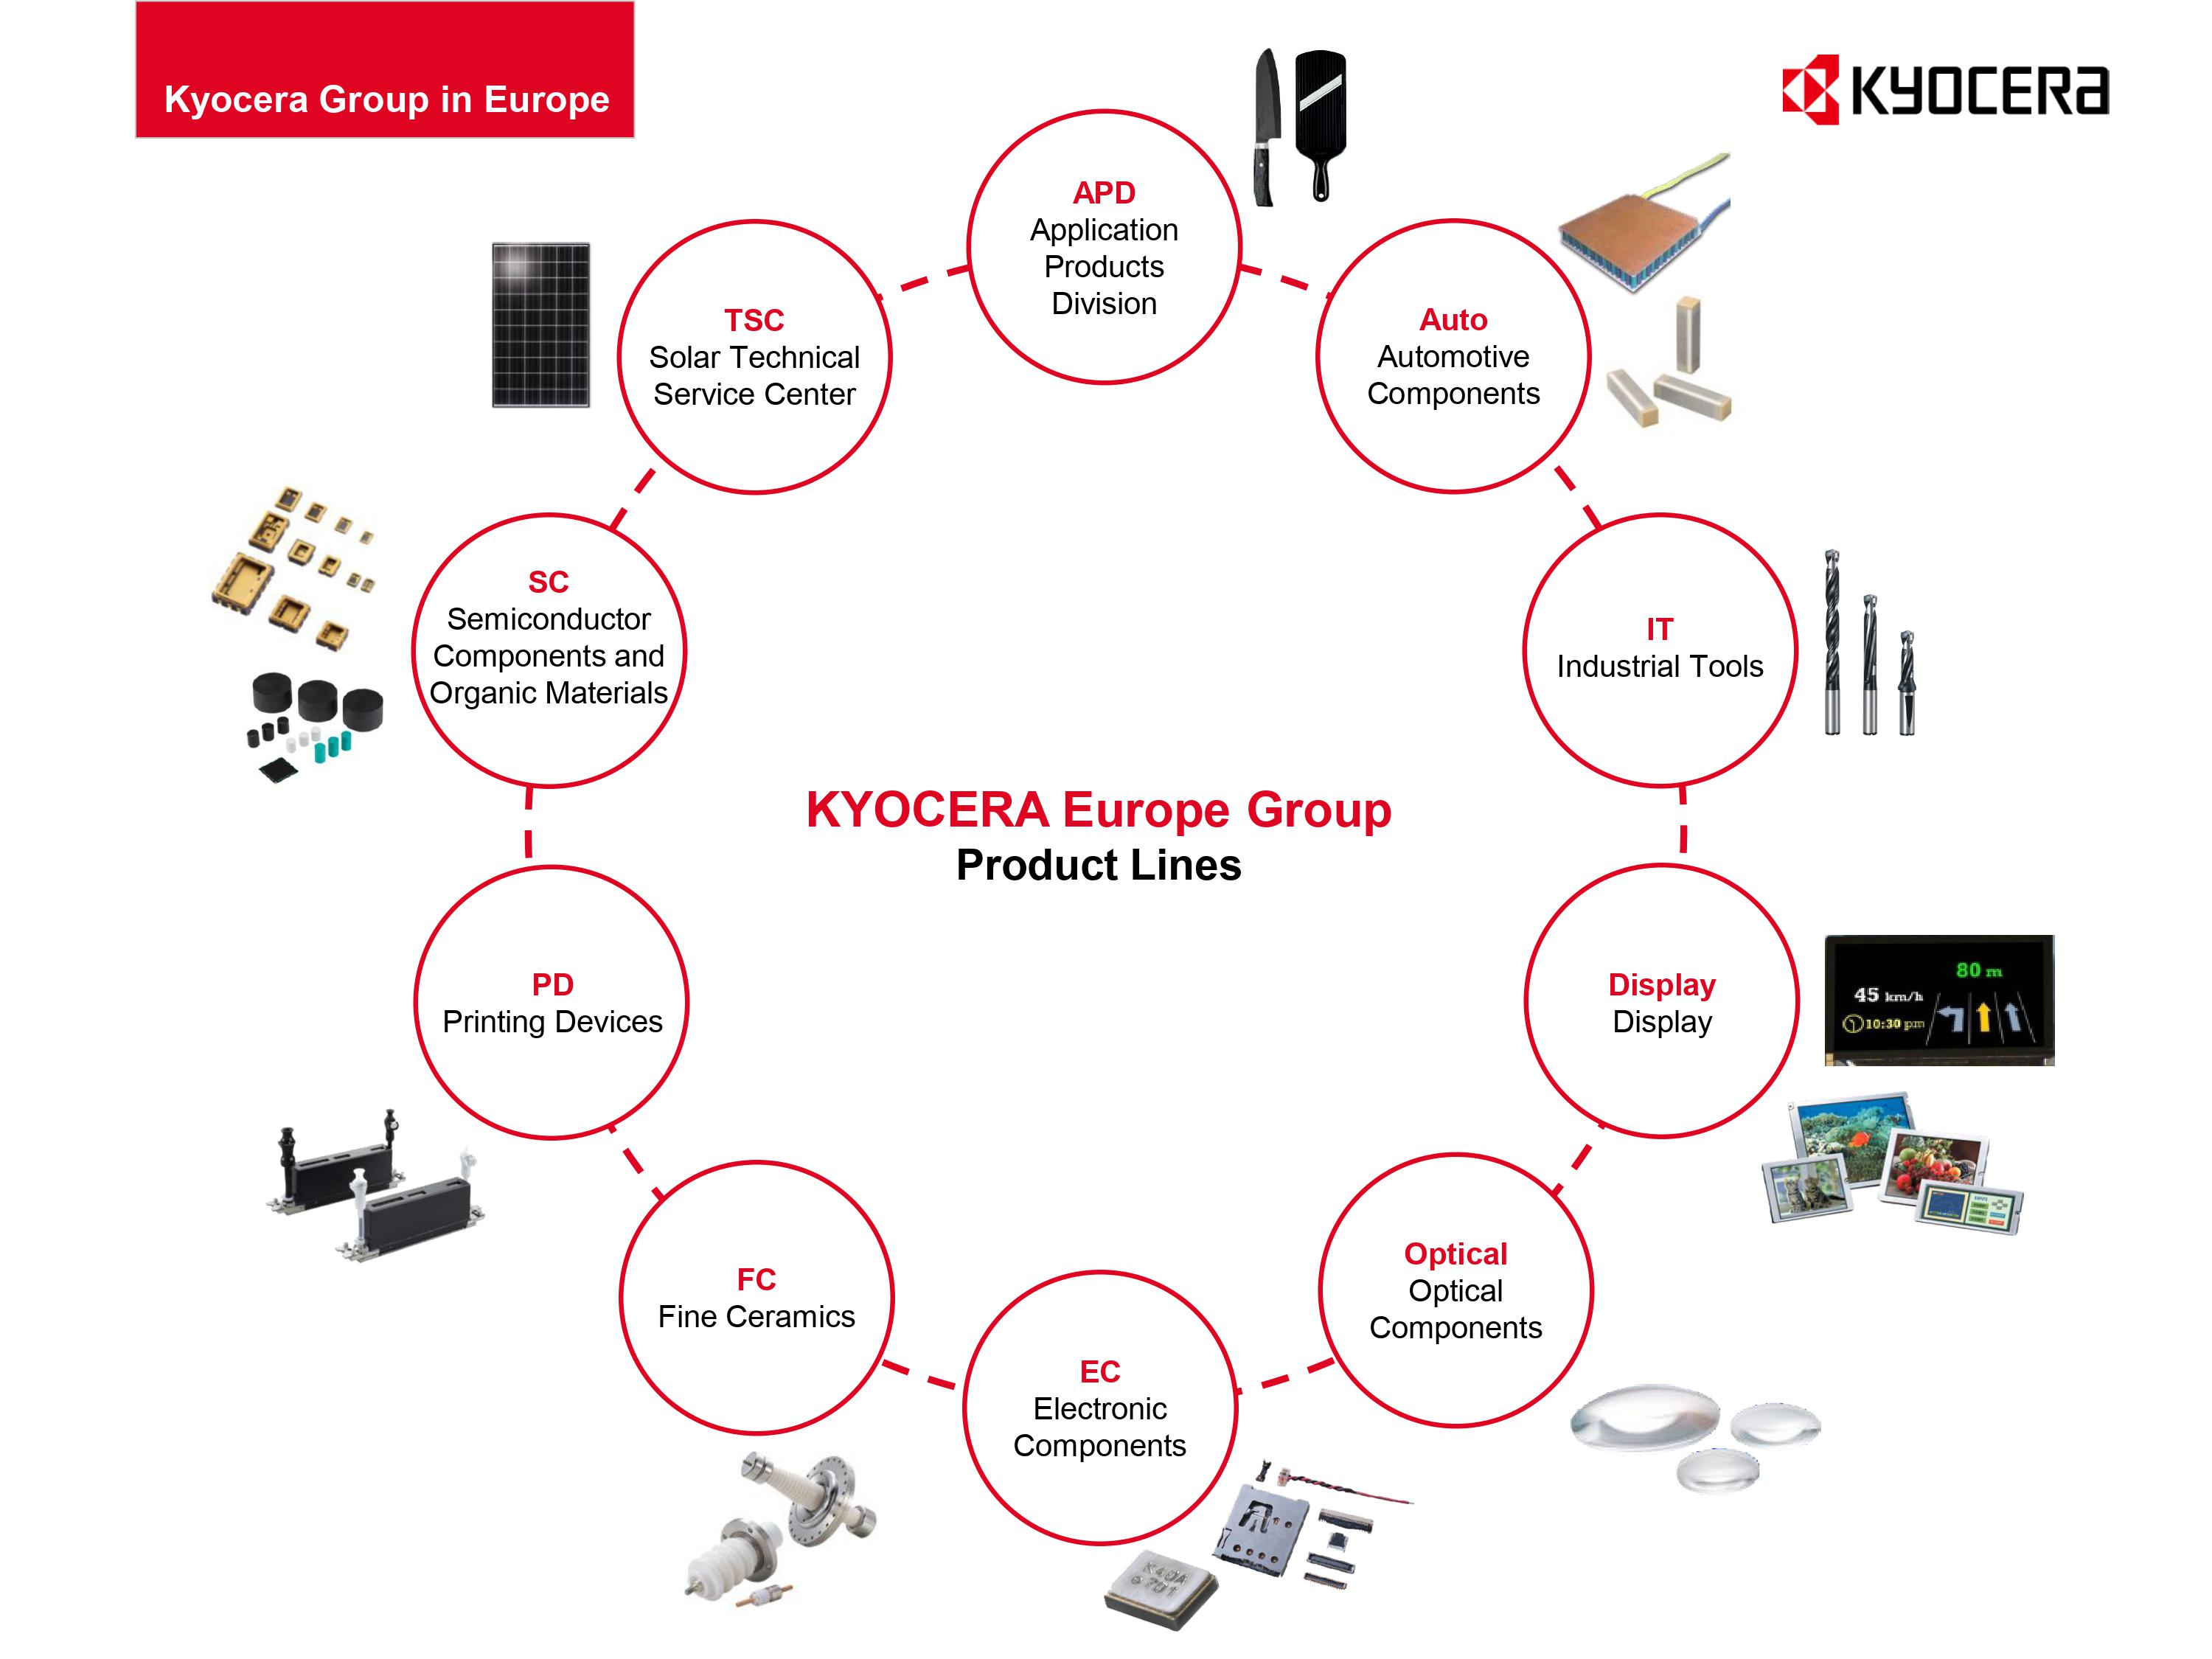 Kyocera_Product lines.jpg